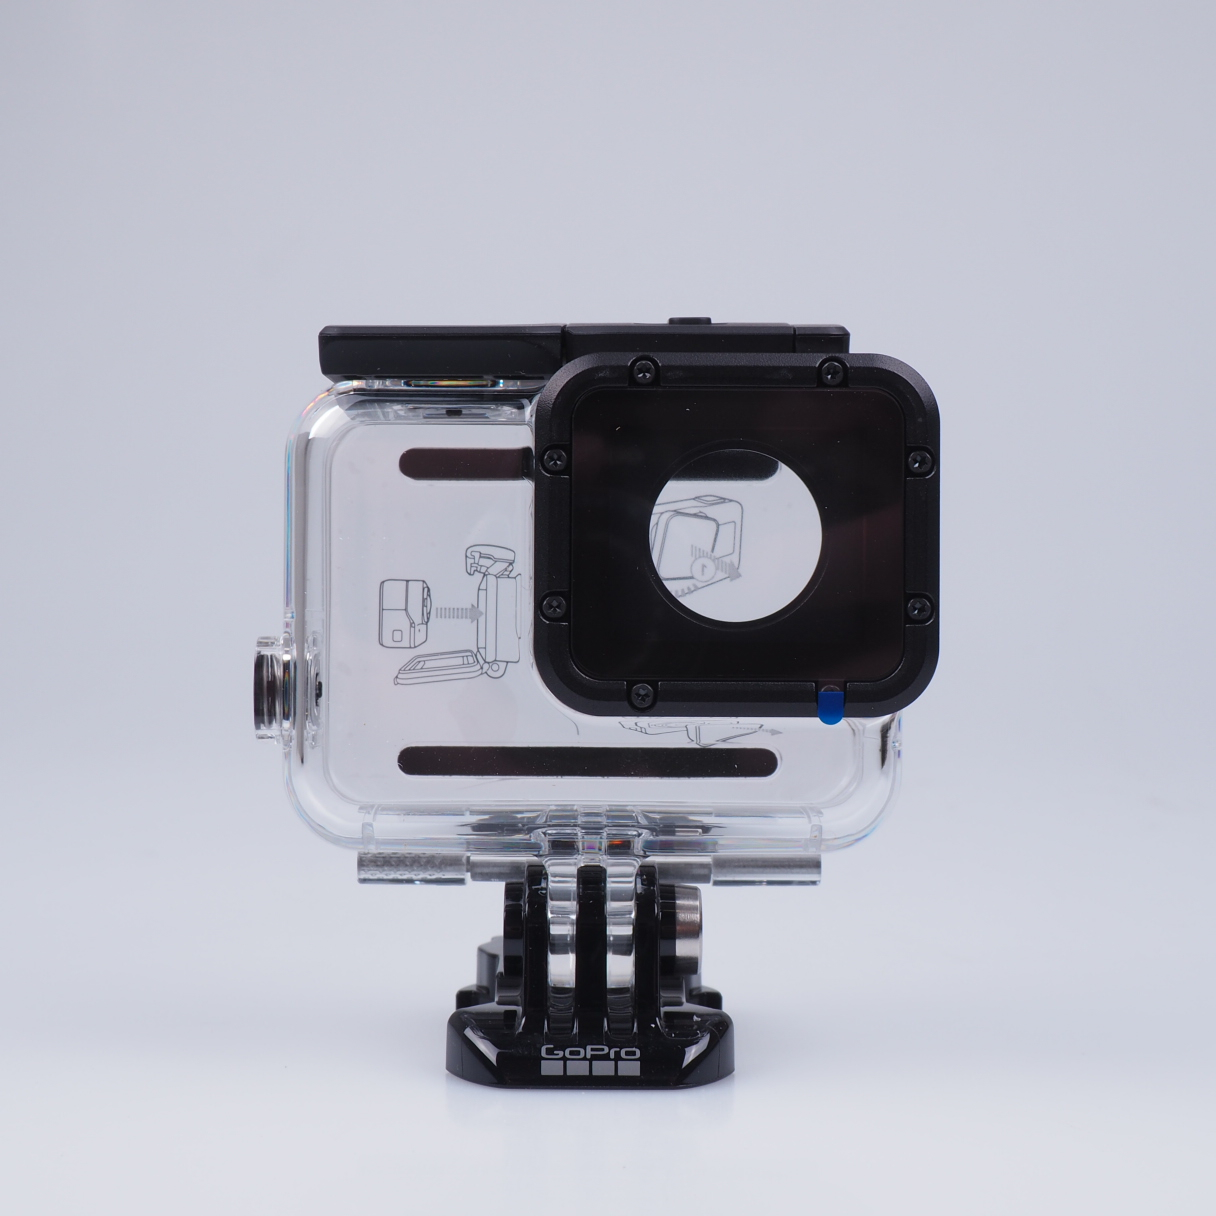 Image of GoPro AADIV-001 GoPro Super Suit Dive Housing for HERO5 Black